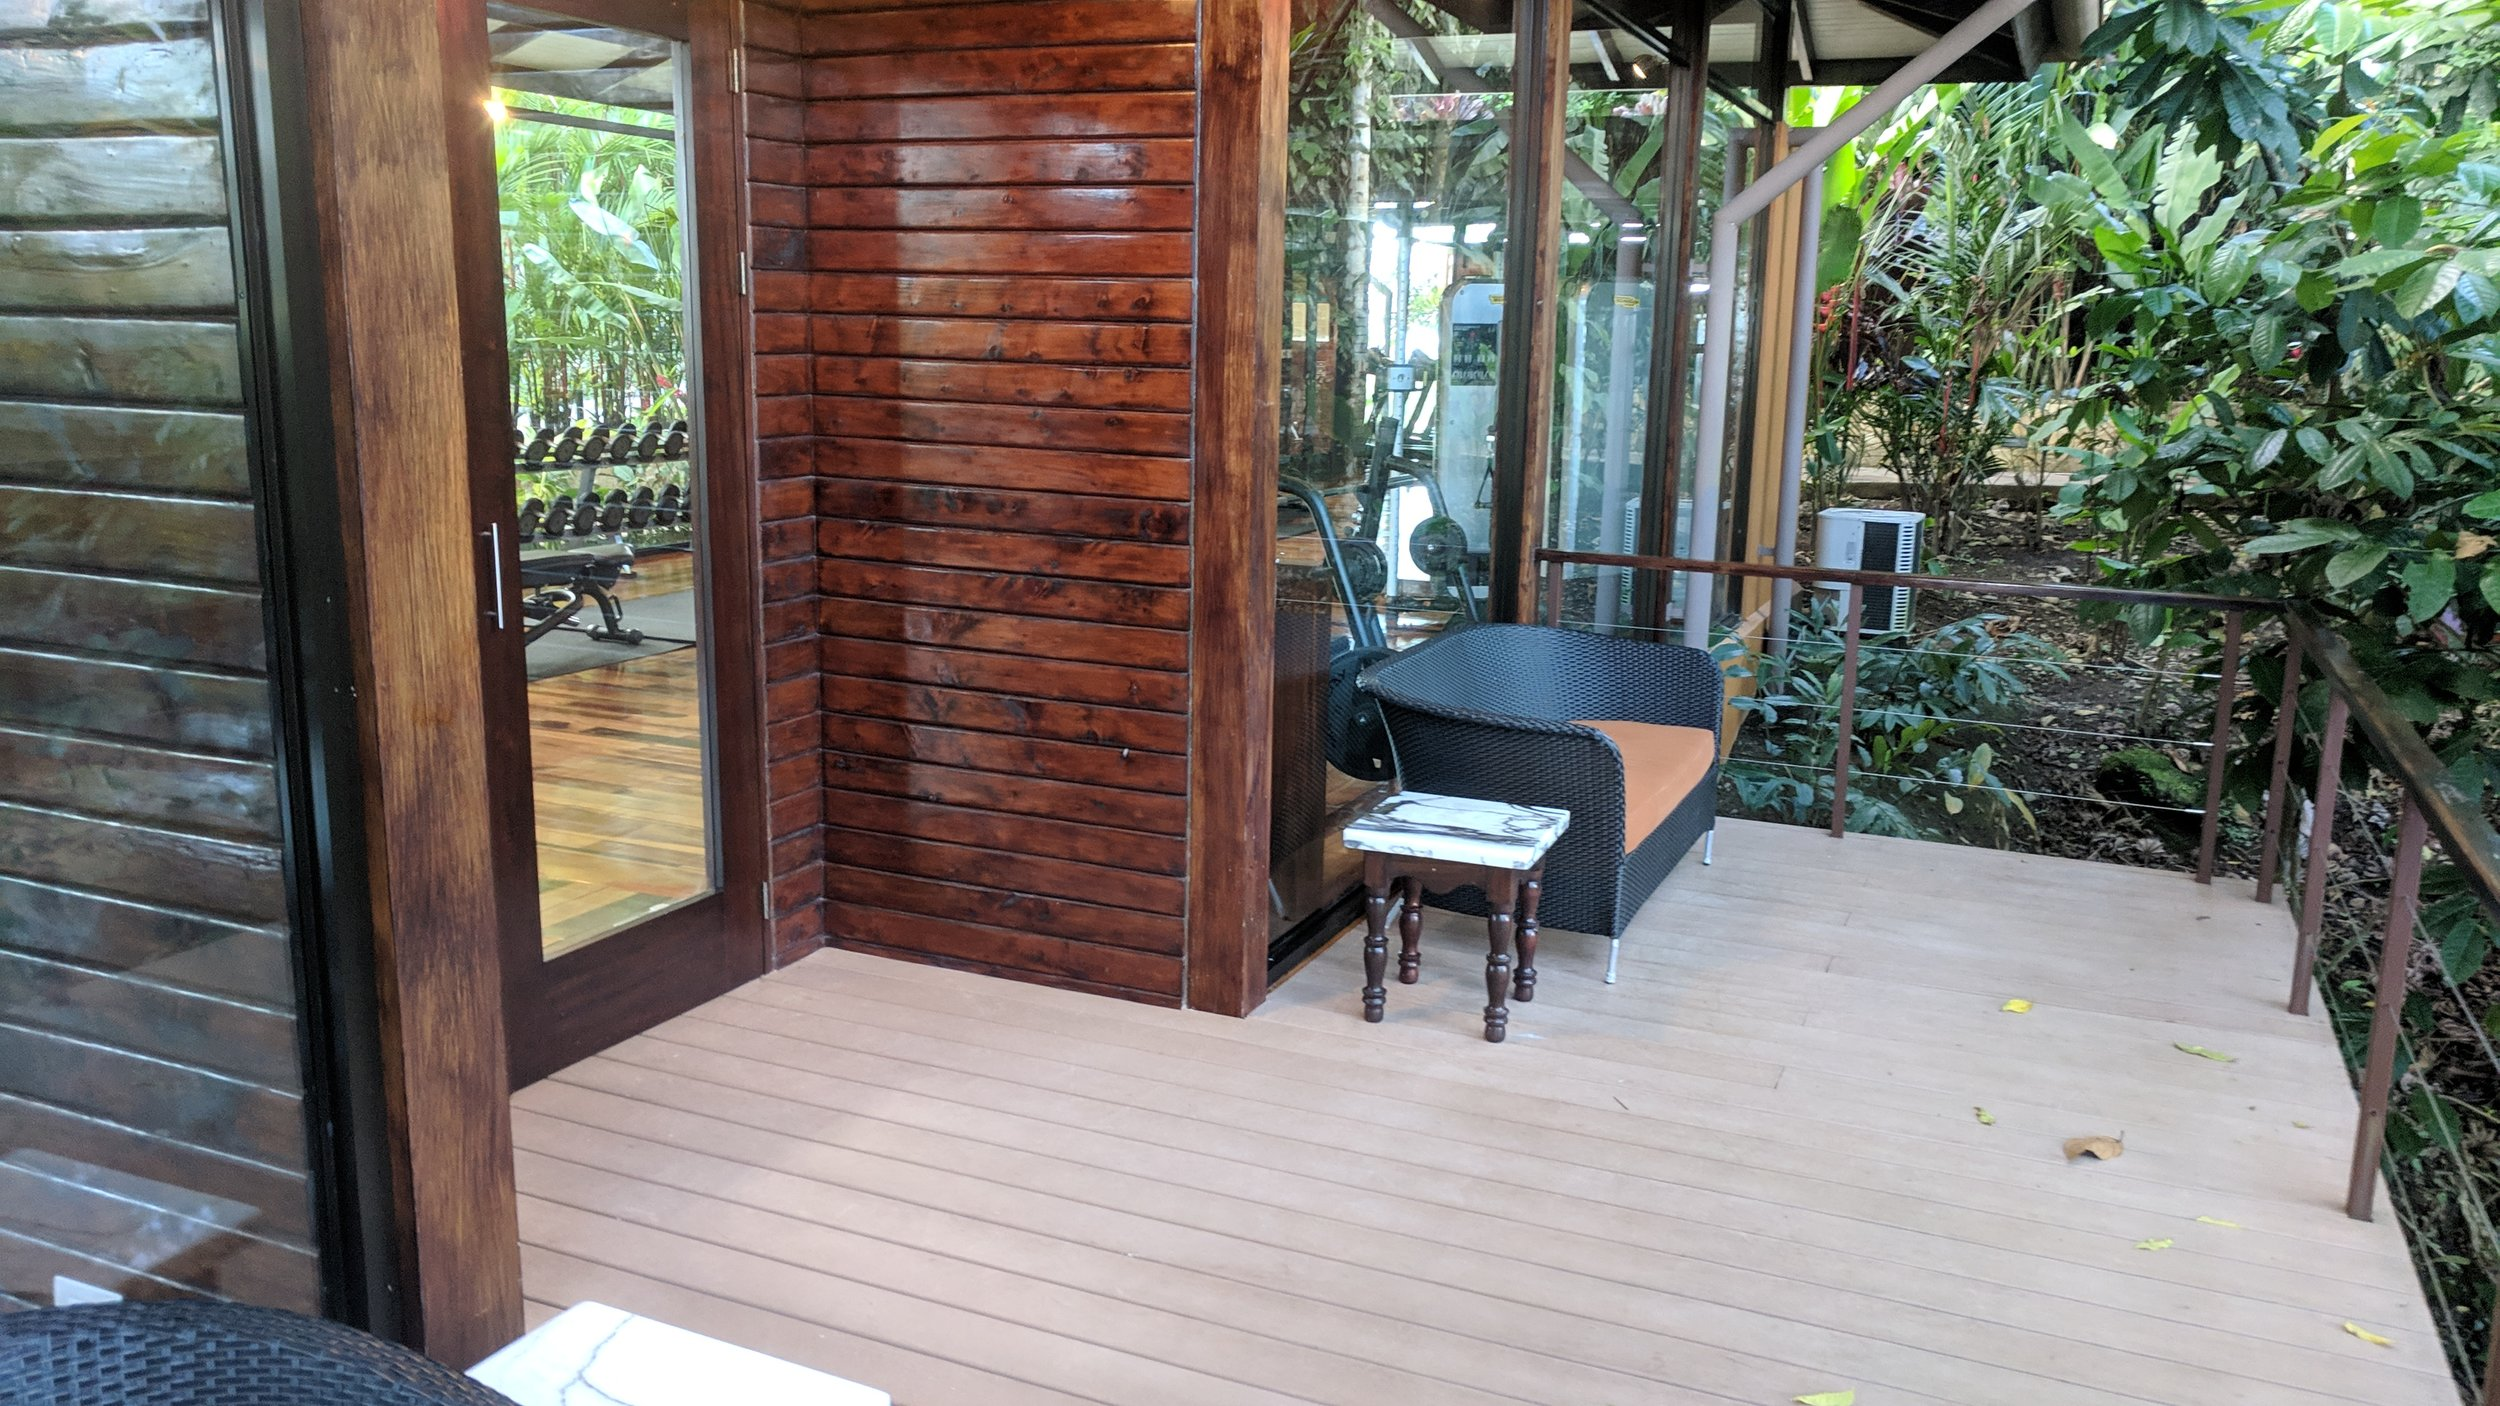 And a nice outside balcony area if you wanted to step outside to take a break in between sets.